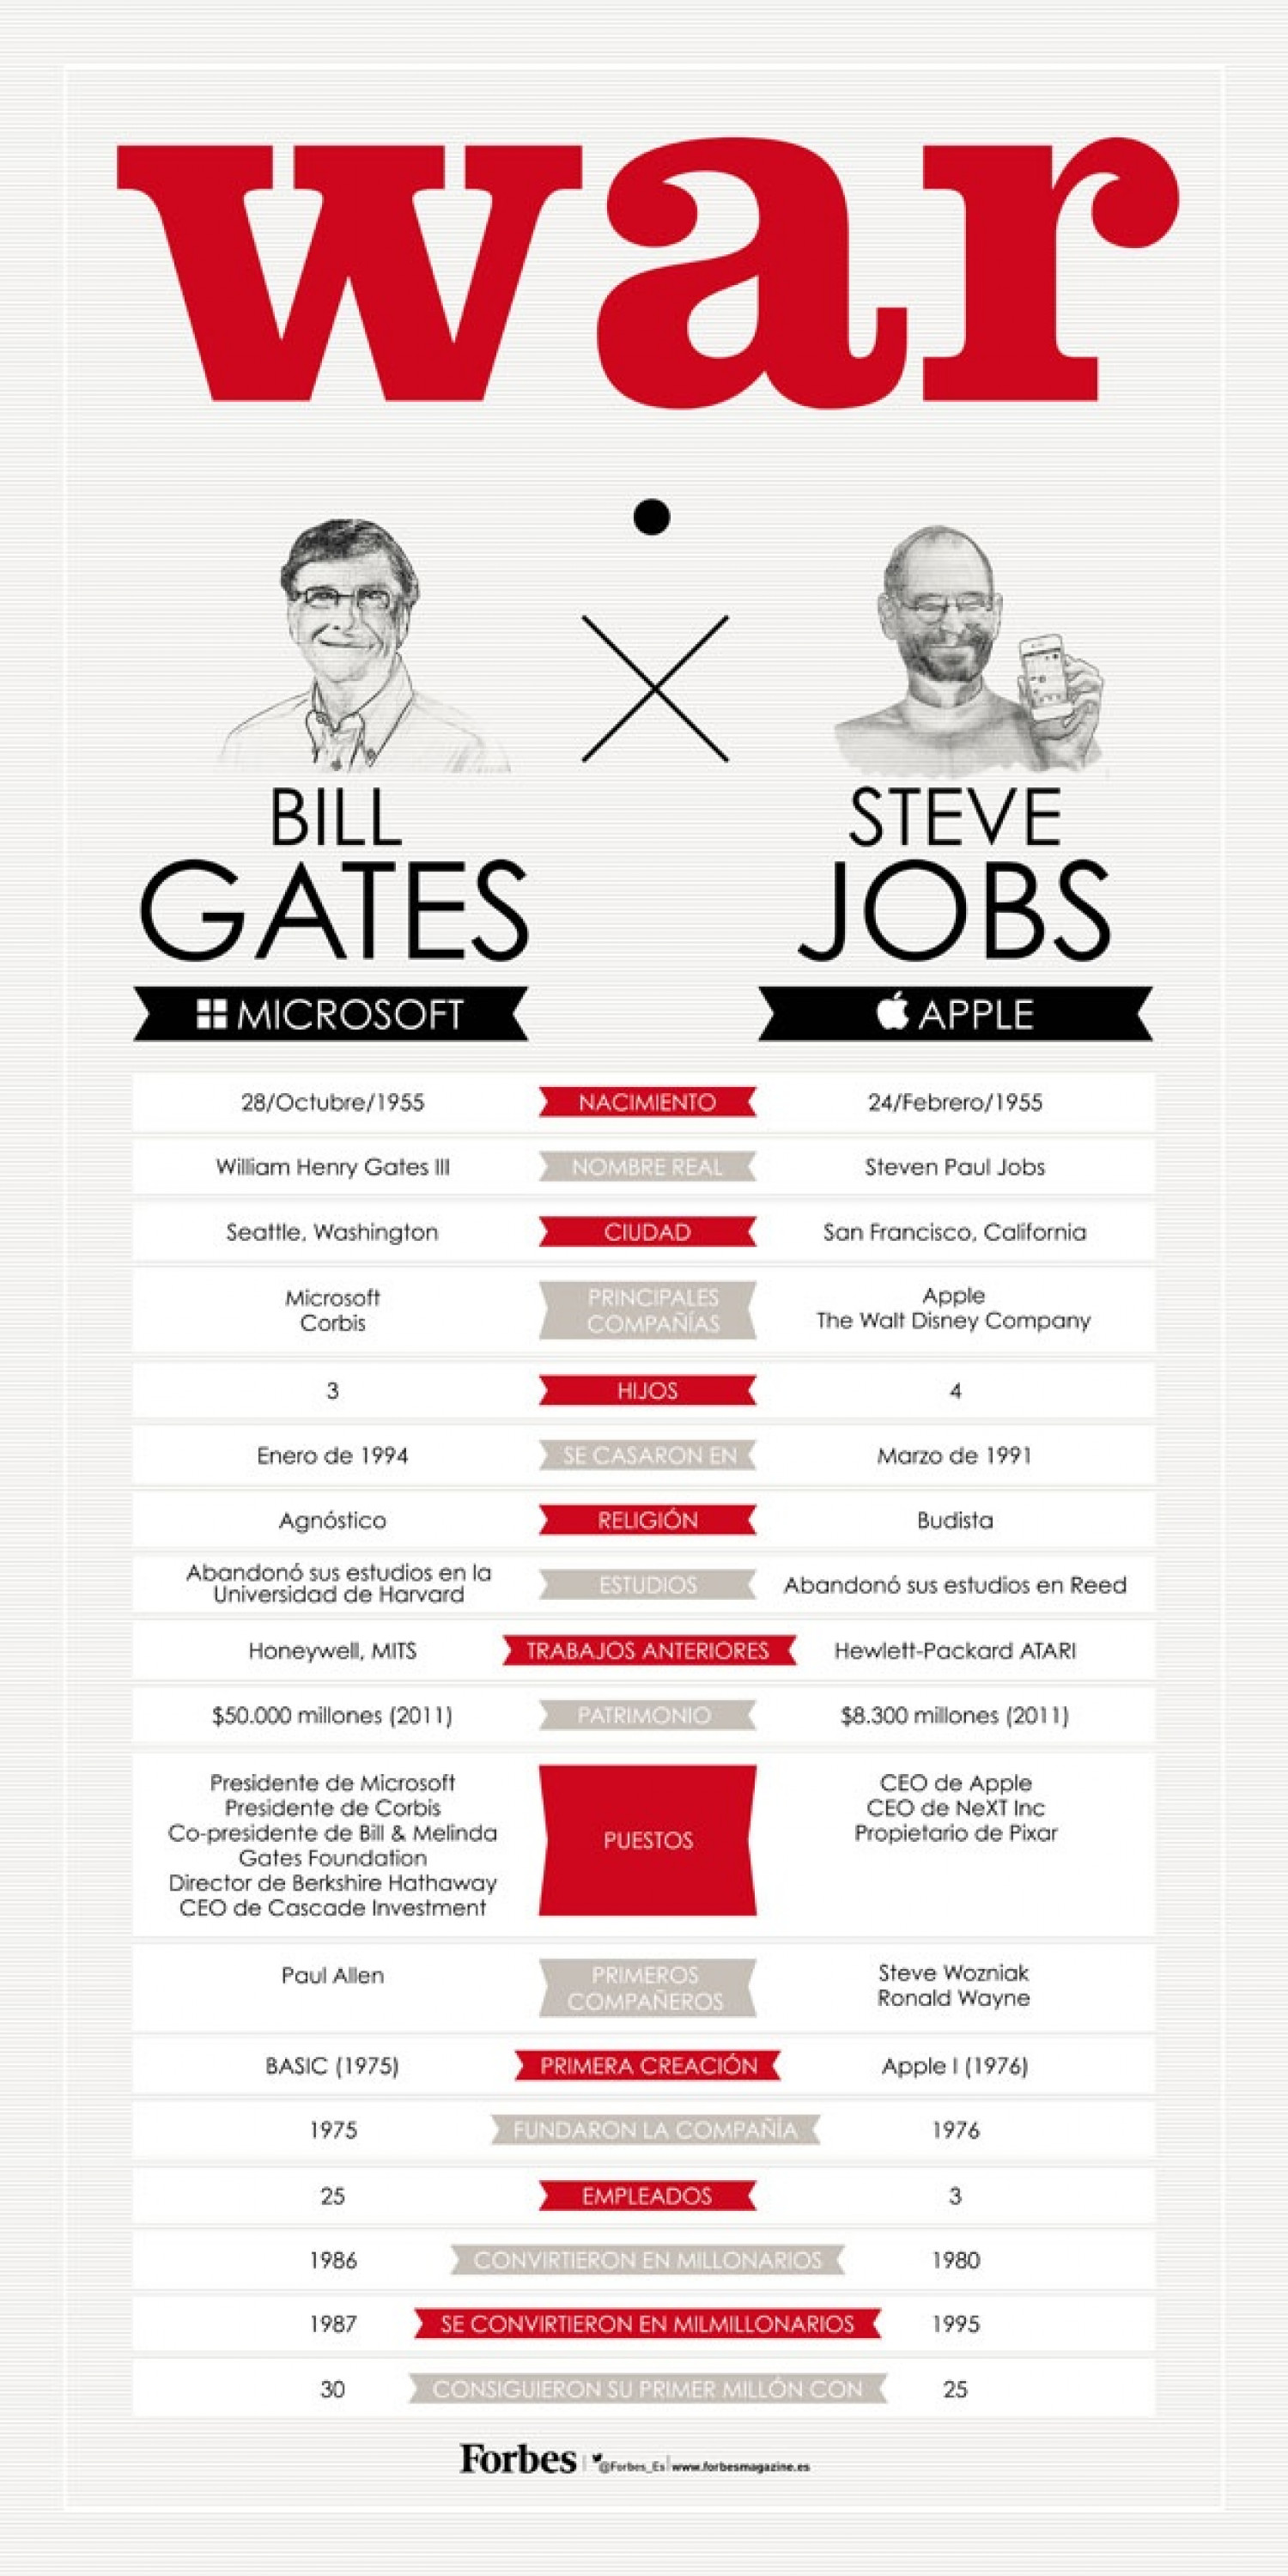 Steve Jobs, Bill Gates and Microsoft. It's complicated.